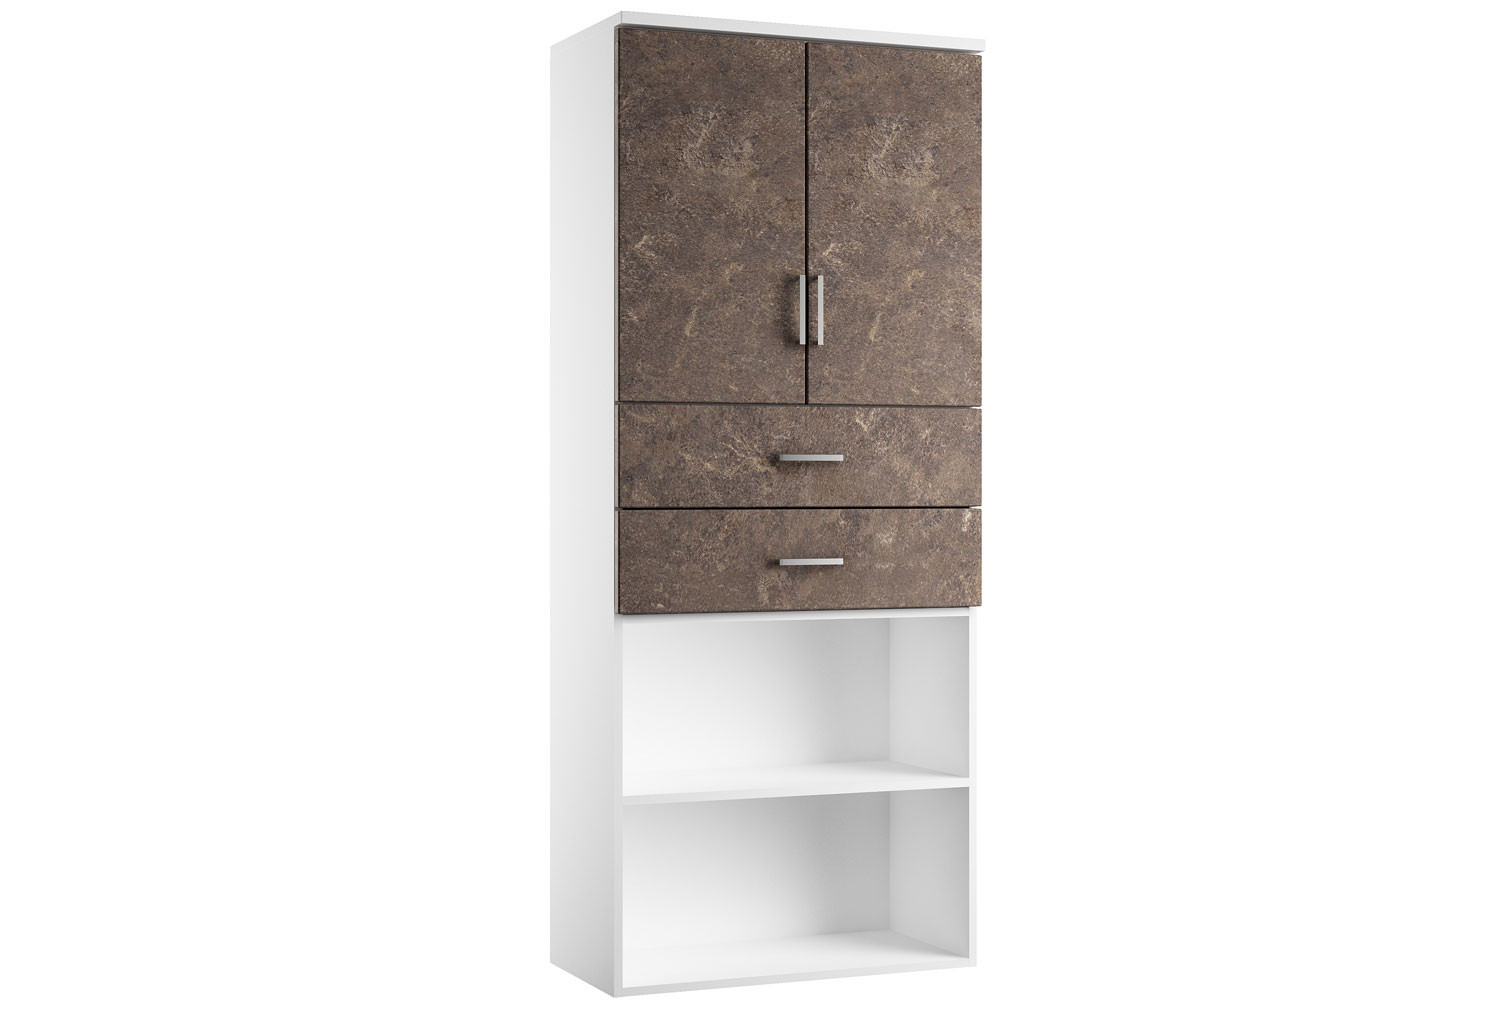 Lasso Cupboard Combination 4 (Pitted Steel)